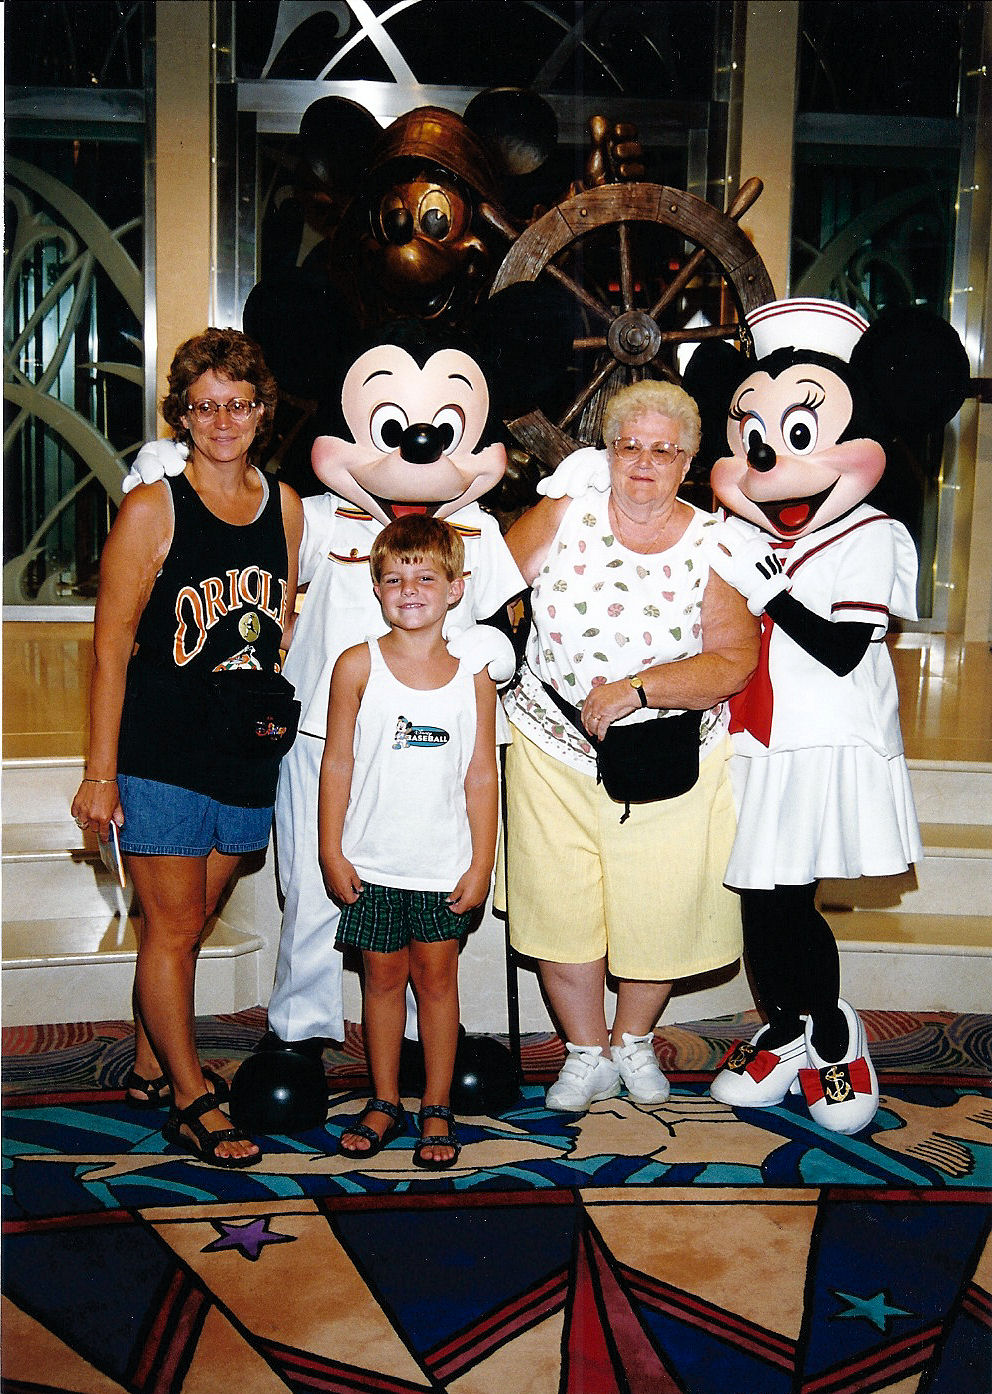 Me, my mother, and my grandmother with Mickey and Minnie on the Disney Cruise Line.